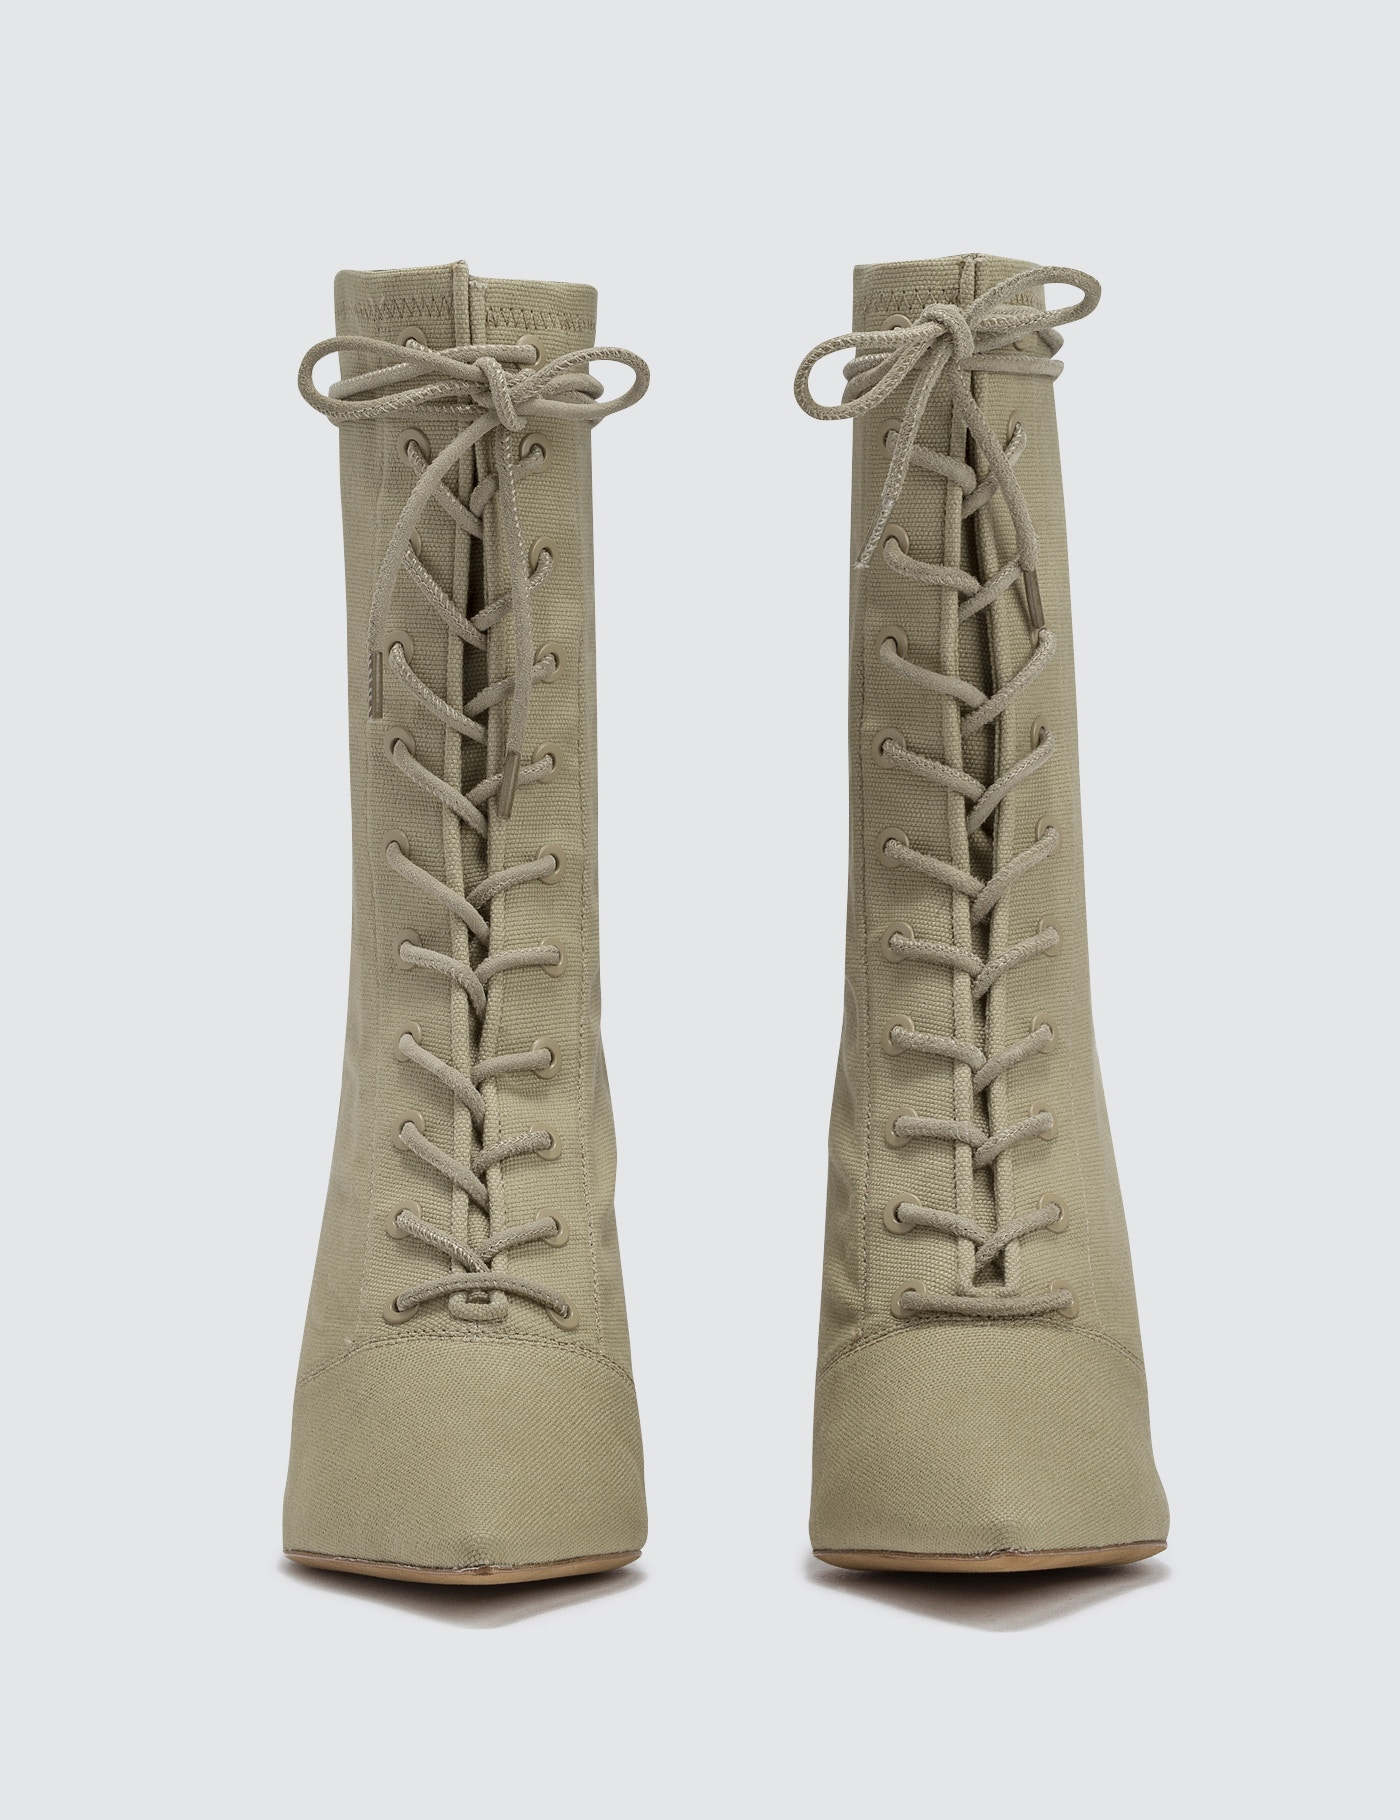 8eefc4f1cc9 ... Yeezy Season 6 Women s Lace Up Ankle Boot In Stretch Canvas 90mm Heel  ...